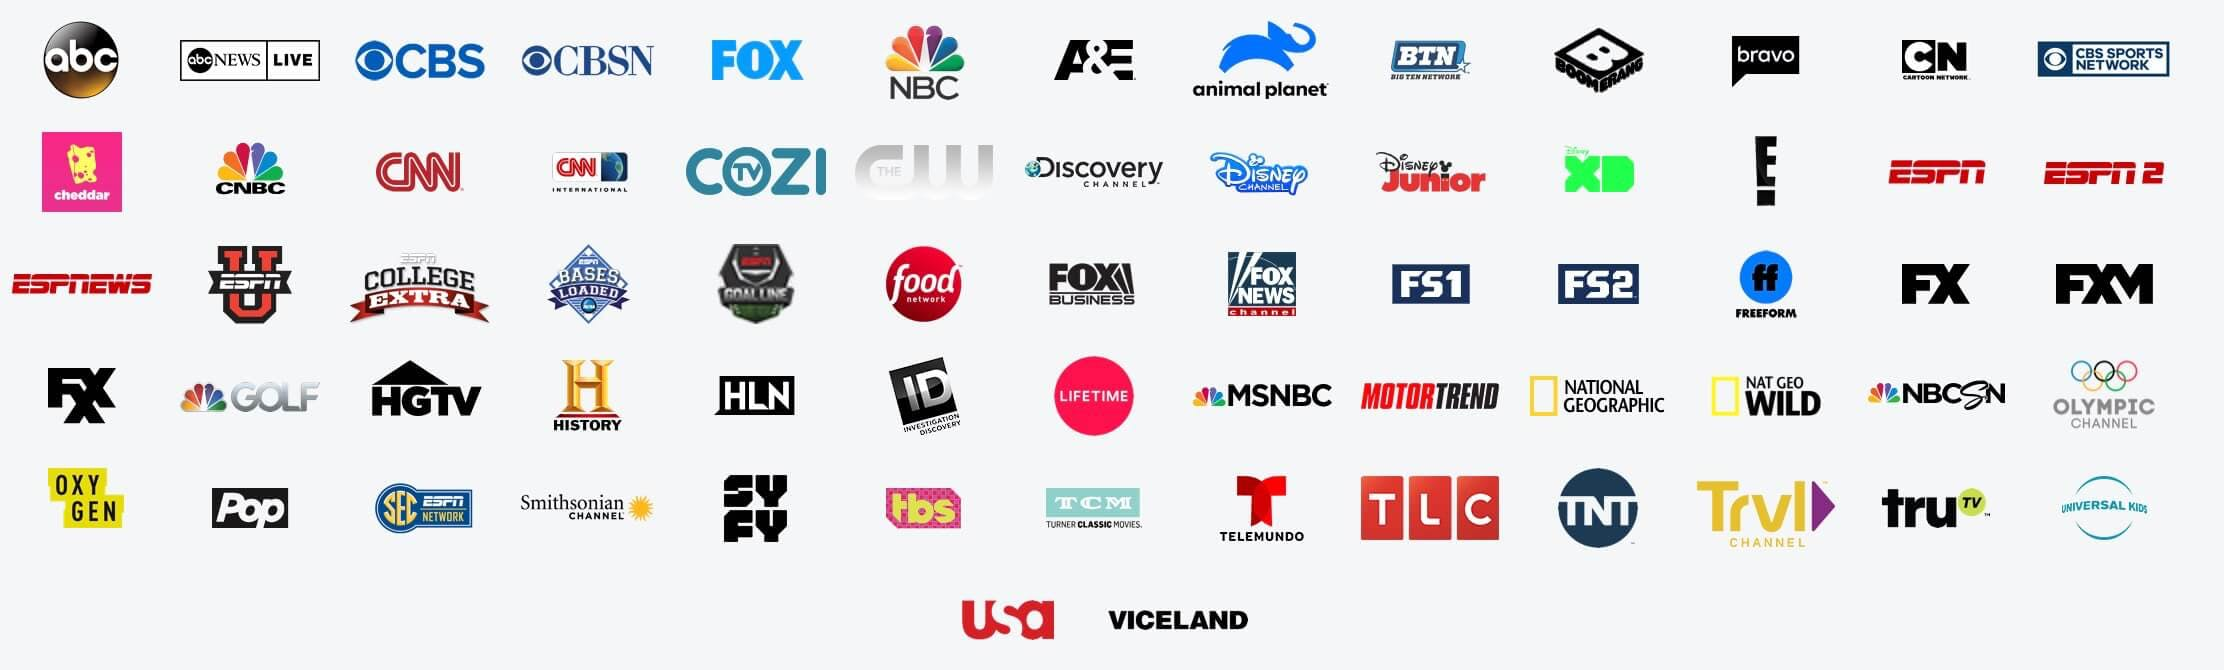 Hulu with Live TV channels live stream xfl